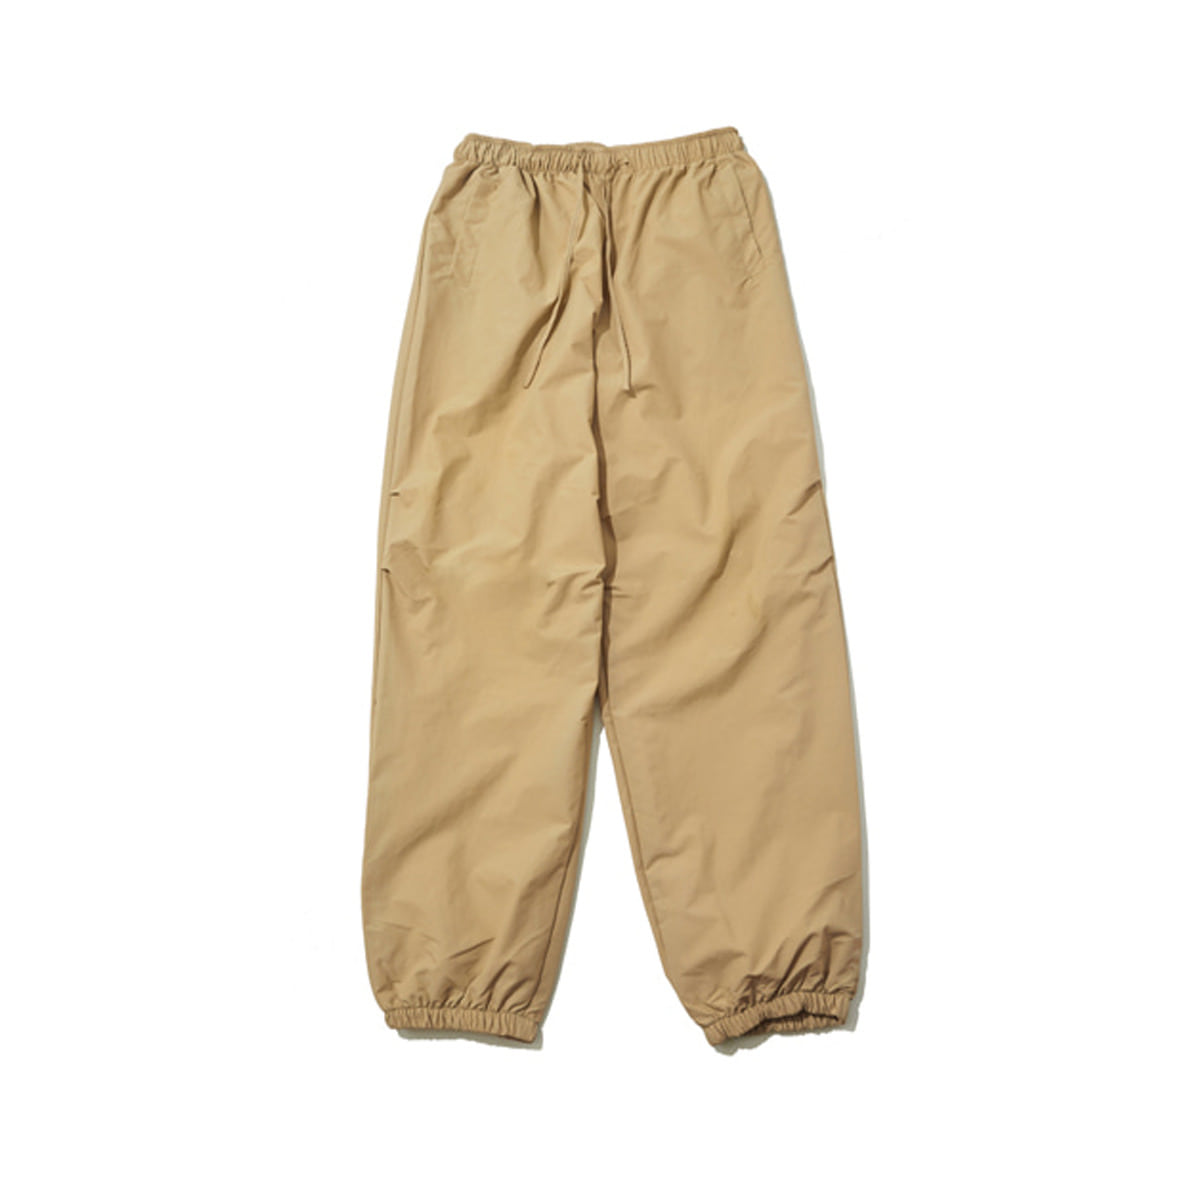 Balloon Pants, Beige